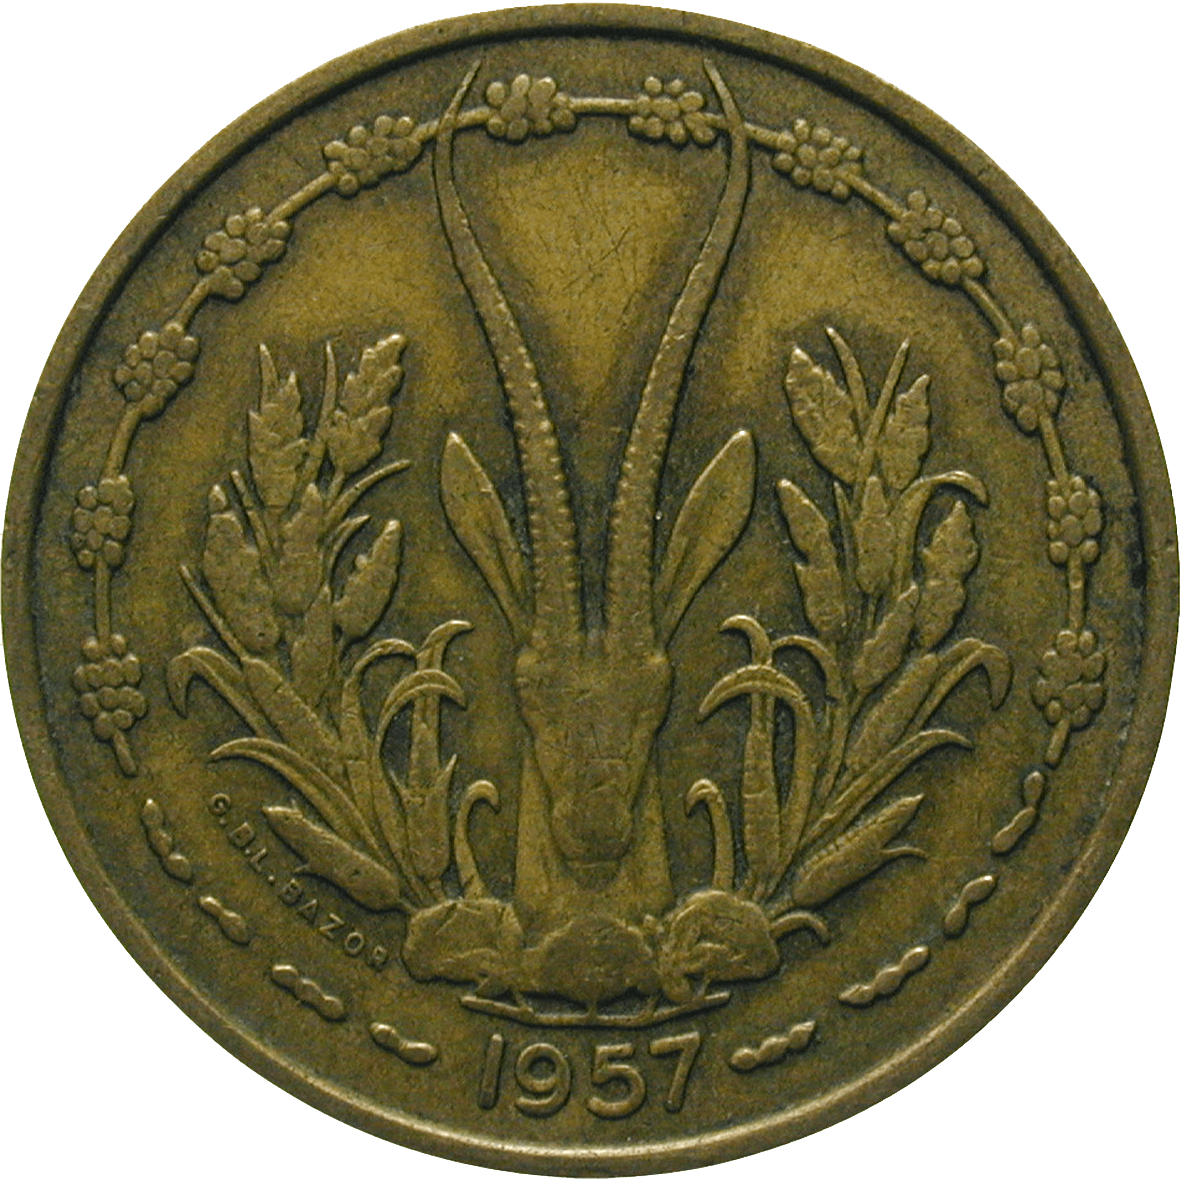 Republic of France for French West Africa, 25 Francs 1957 (reverse)